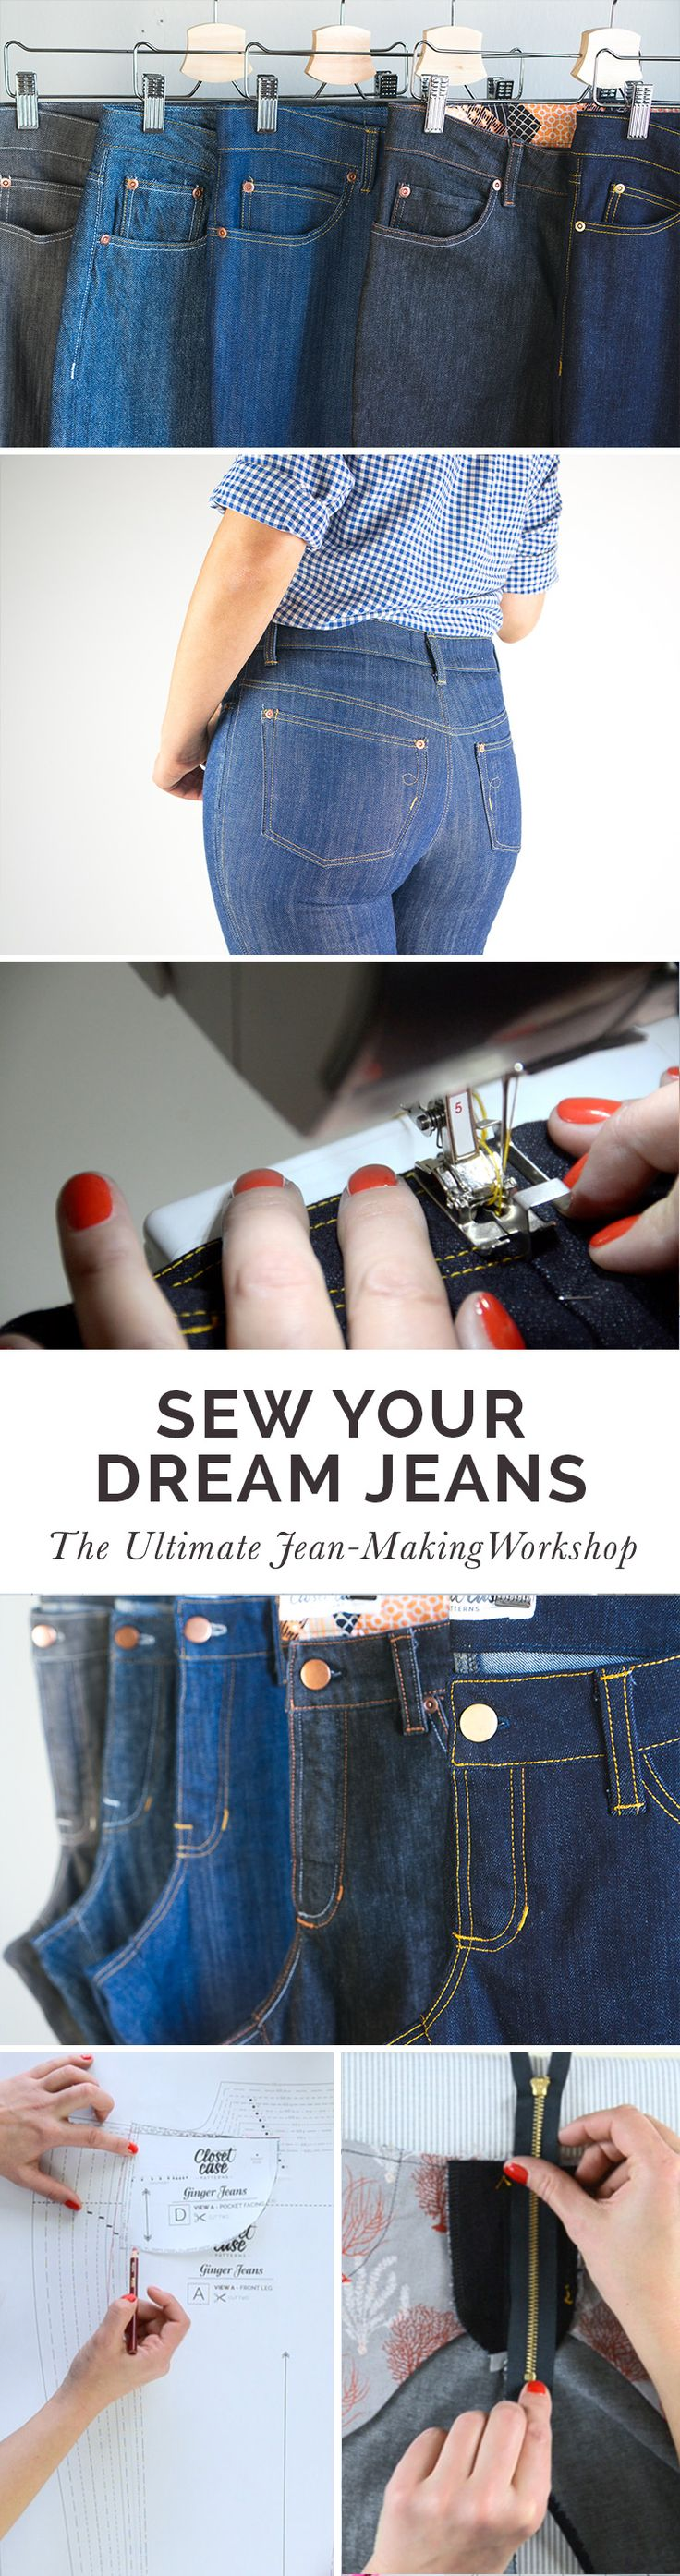 The ultimate online jean-making course! Learn to Sew Your Dream Jeans with Heather Lou of Closet Case Patterns http://sewingworkshops.closetcasefiles.com/p/sew-your-dream-jeans/?product_id=232412&coupon_code=PRESALE&preview=logged_out&utm_source=Closet+Case+Patterns+Updates&utm_campaign=79d1d24e27-EMAIL_CAMPAIGN_2017_01_14&utm_medium=email&utm_term=0_2c862ec5e2-79d1d24e27-301881745&mc_cid=79d1d24e27&mc_eid=98937766f0